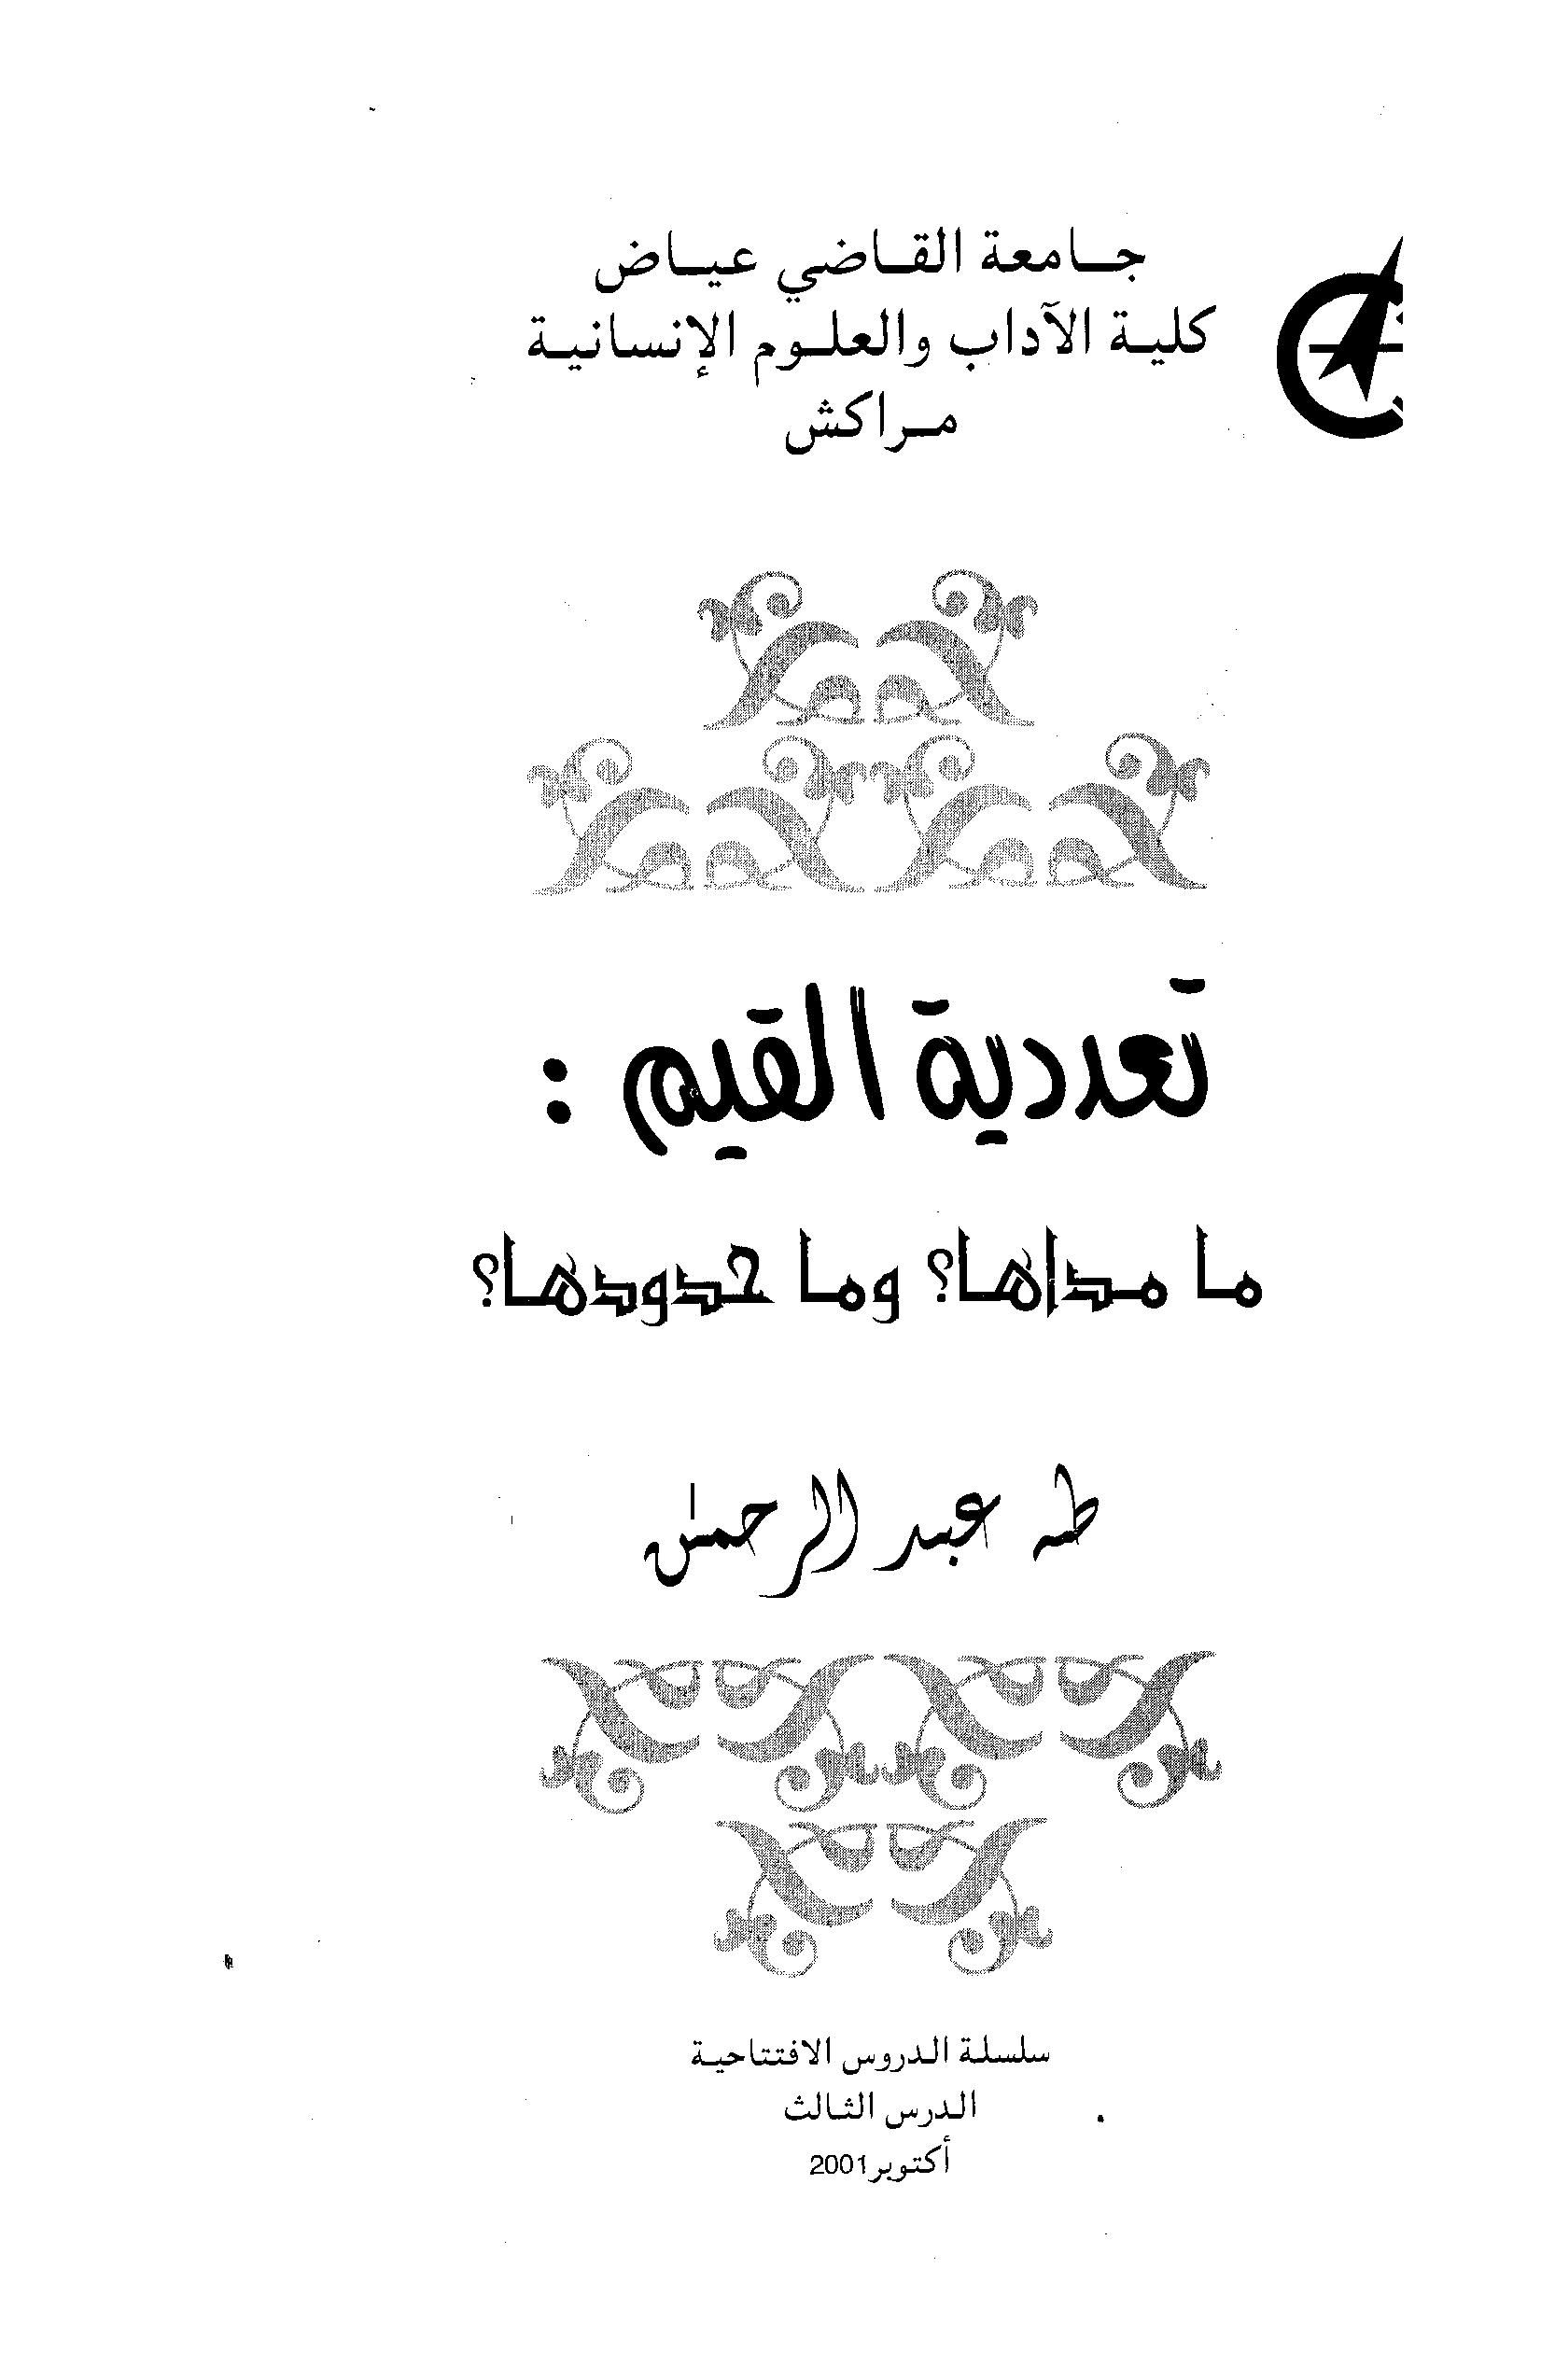 Pin By Abdellah Maliki On Bons Livres In 2021 Books Internet Archive Arabic Calligraphy